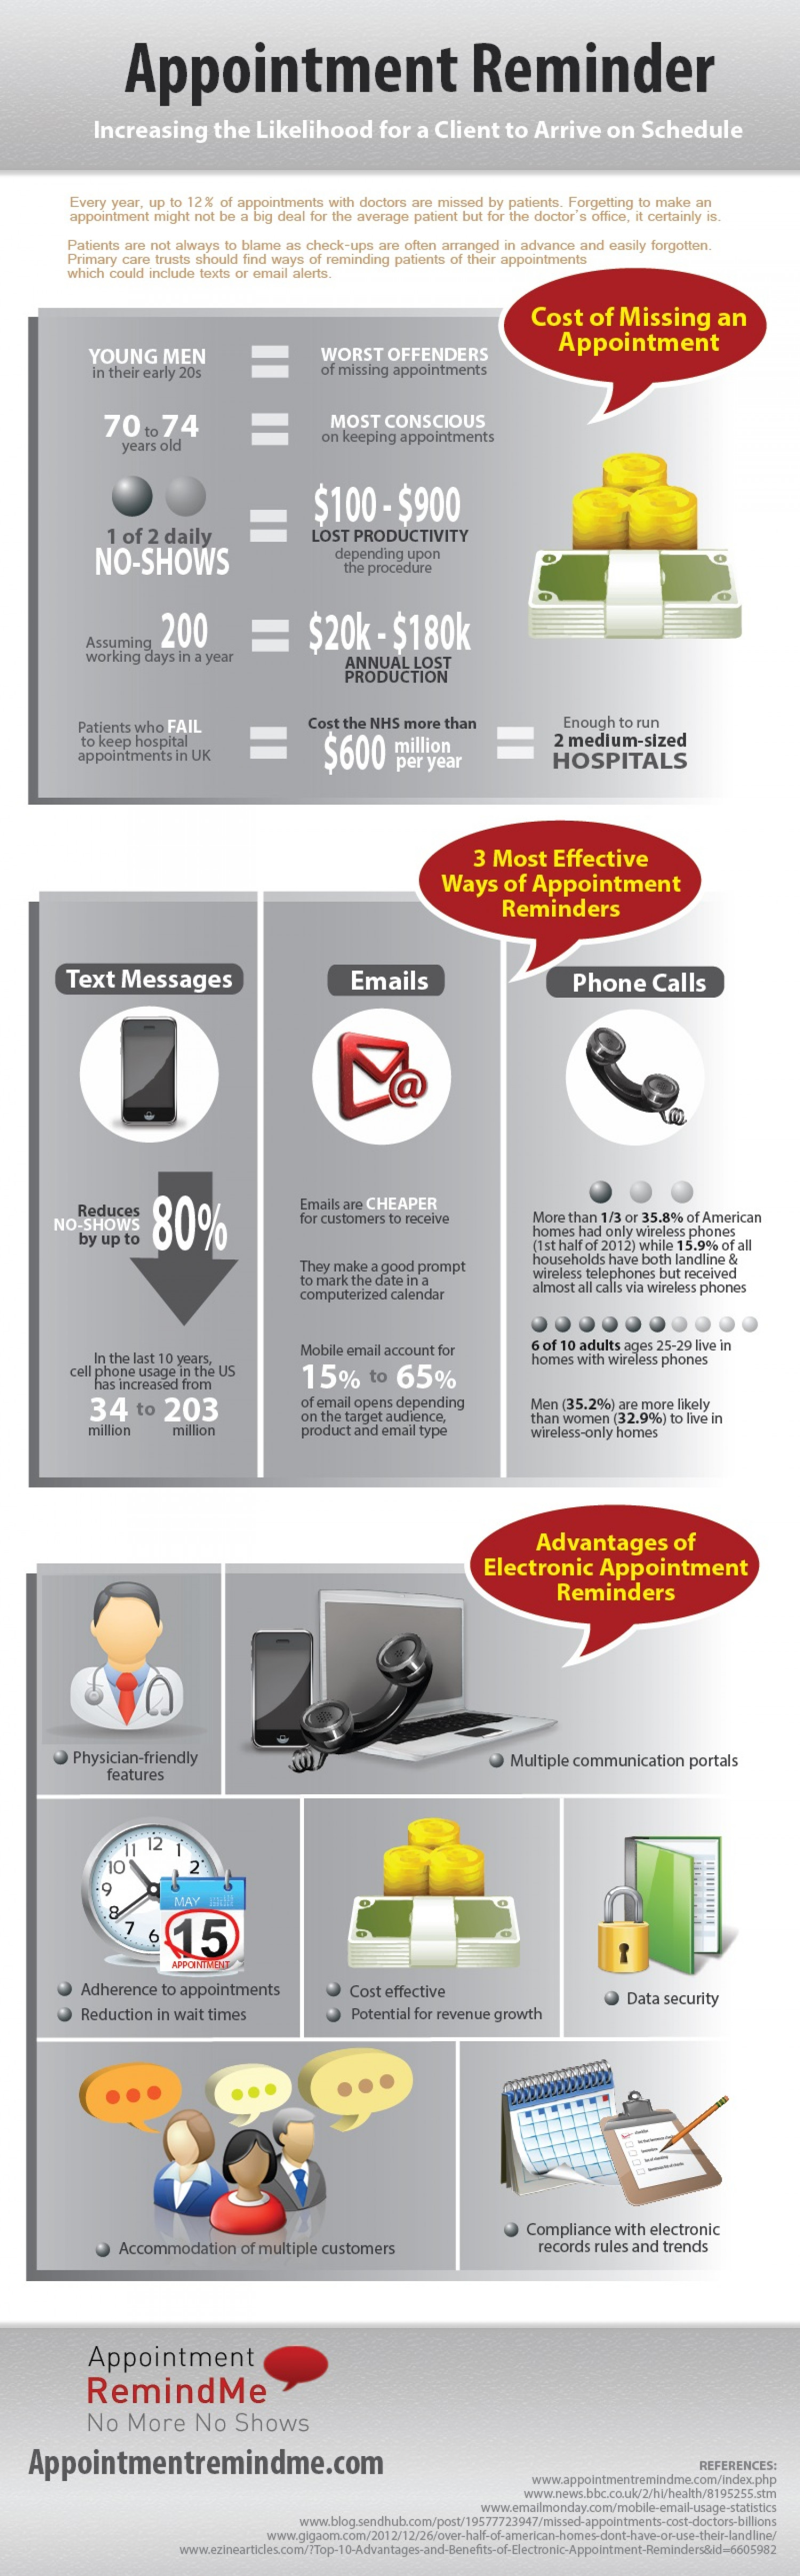 Appointment Reminder: Increasing The Likelihood for a Client to Arrive on Schedule Infographic